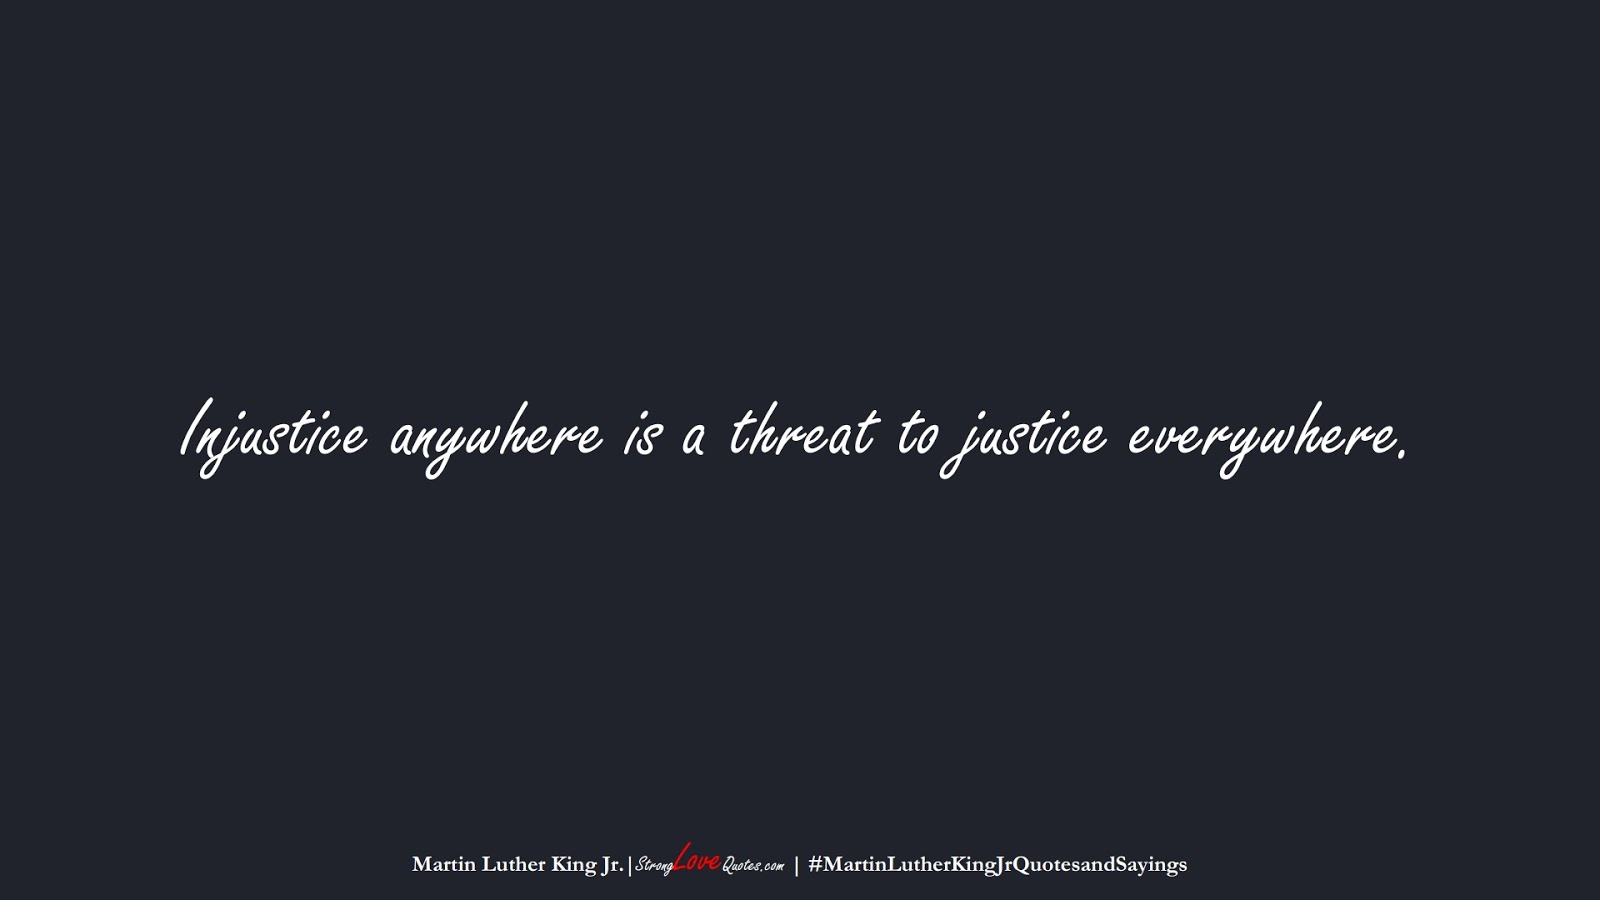 Injustice anywhere is a threat to justice everywhere. (Martin Luther King Jr.);  #MartinLutherKingJrQuotesandSayings